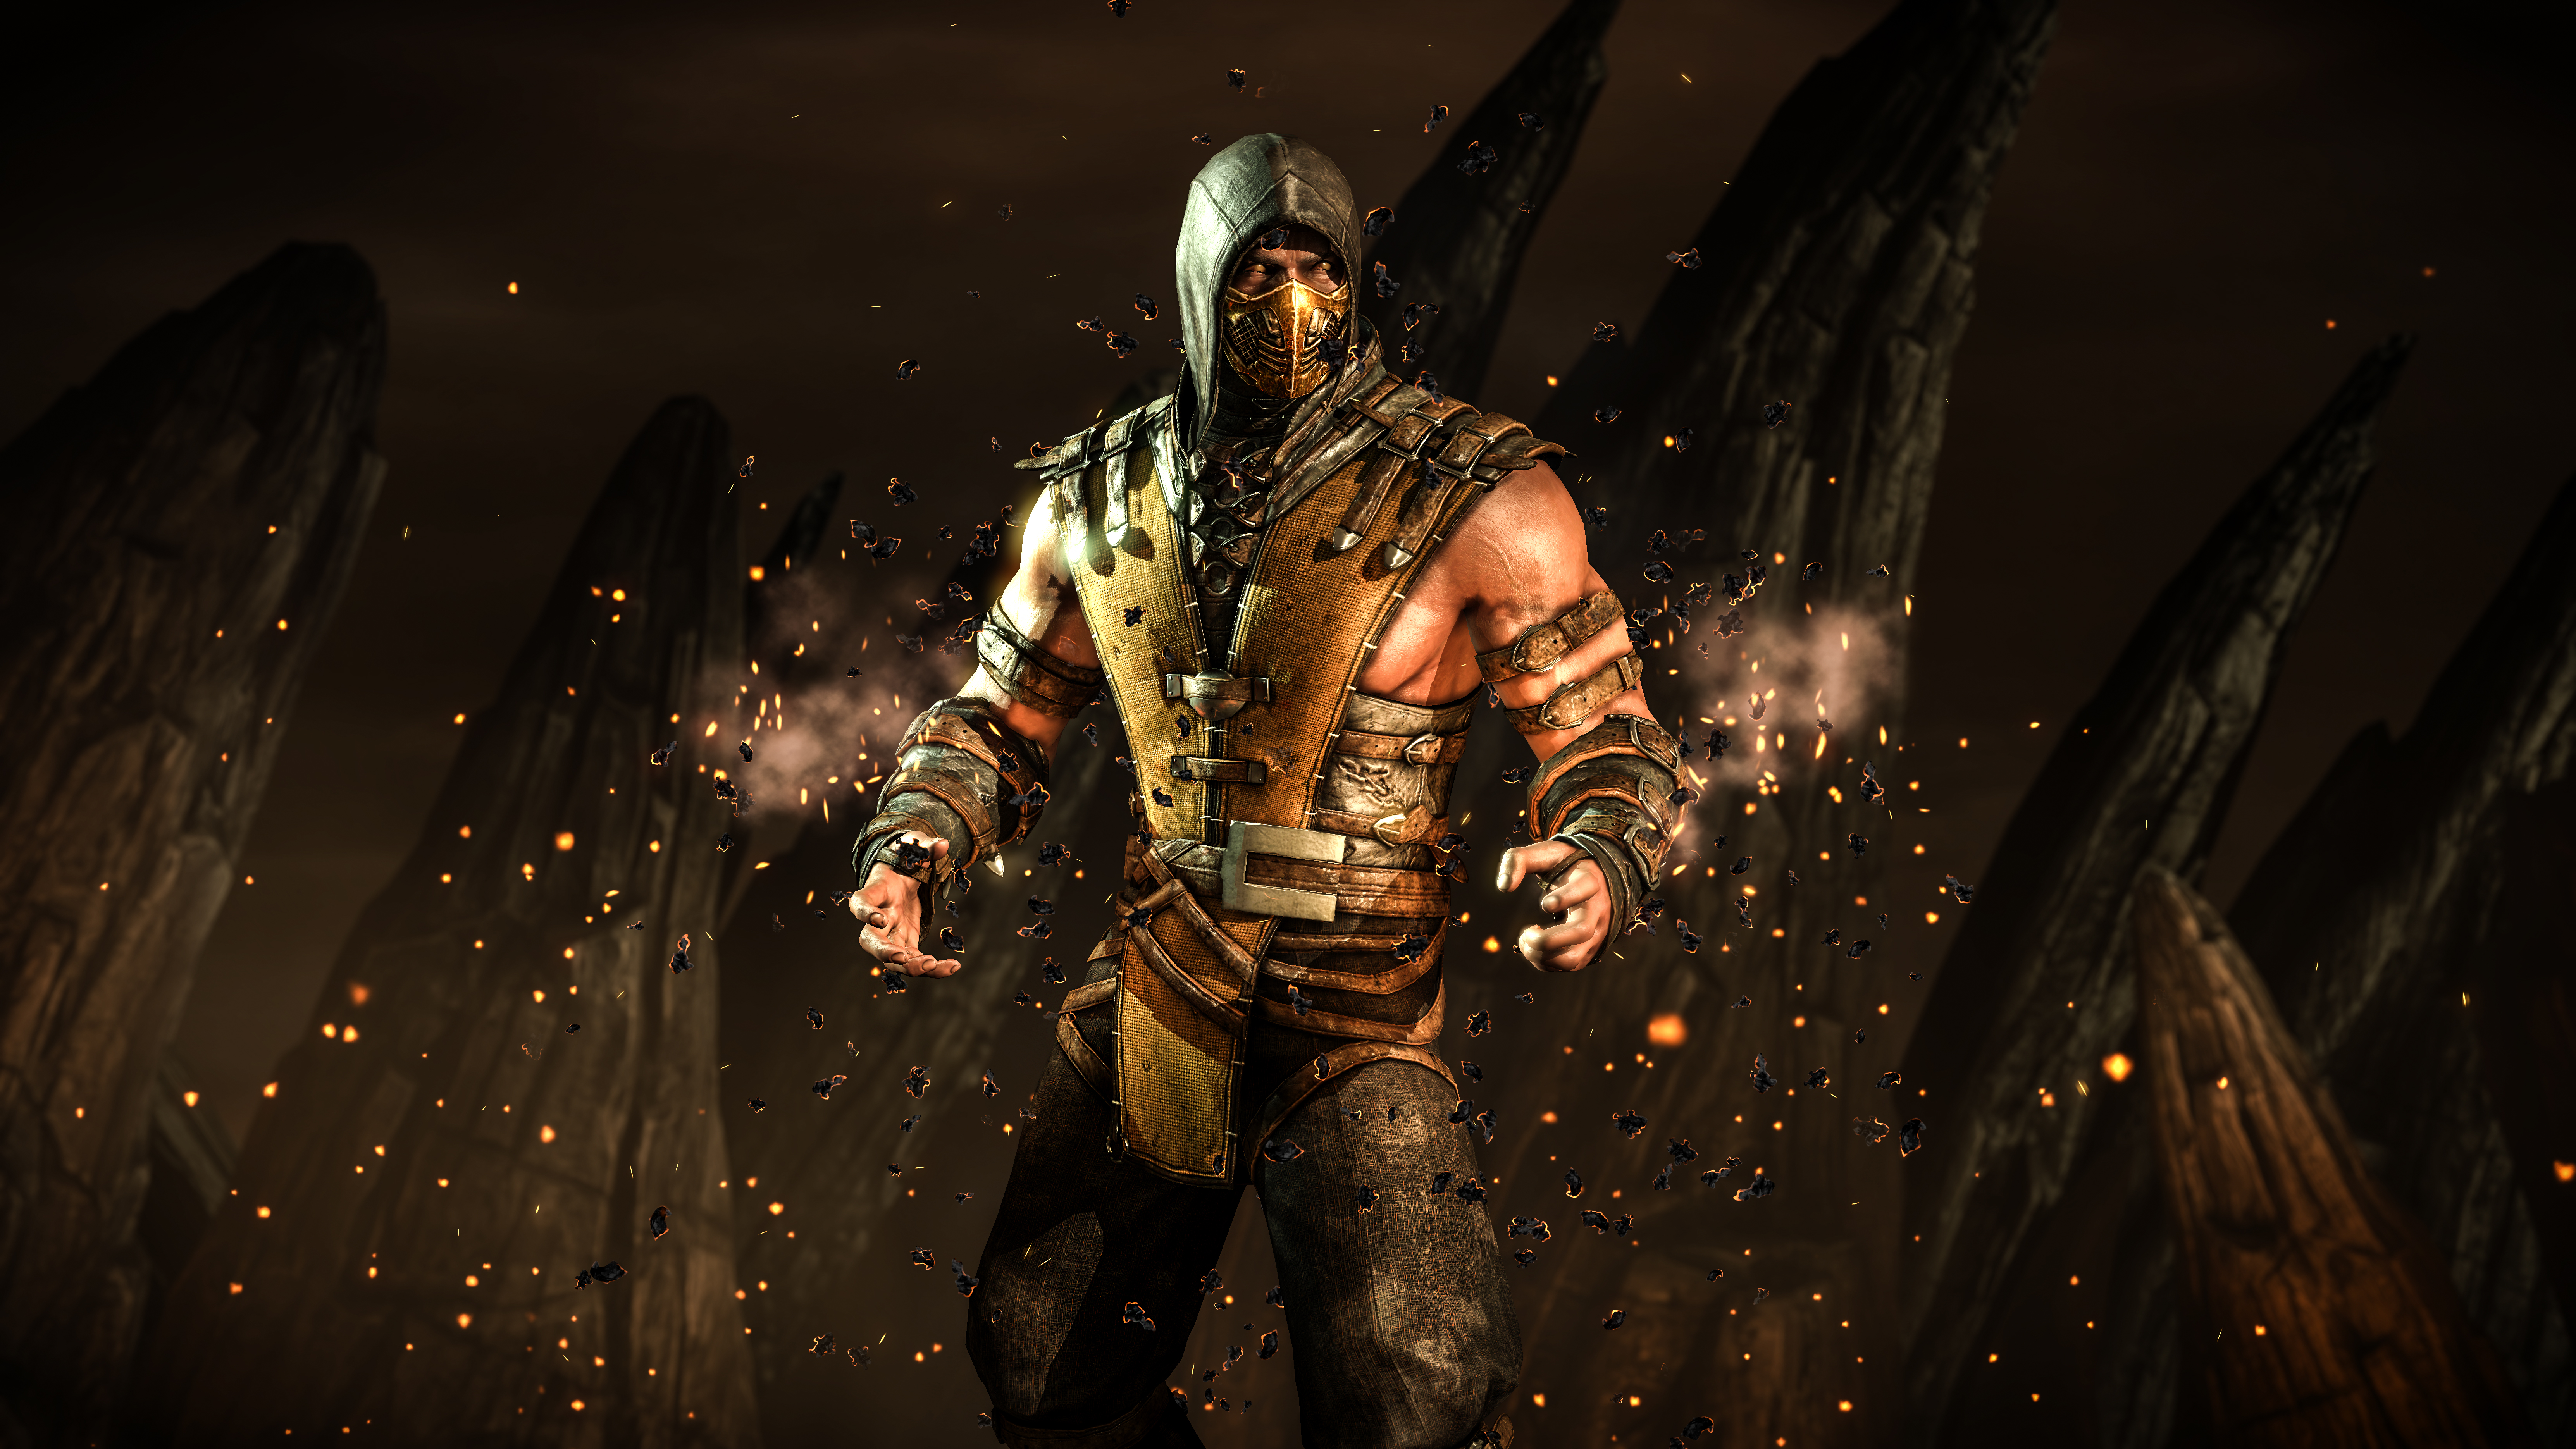 Mortal Kombat X 5k Retina Ultra Hd Wallpaper Hintergrund